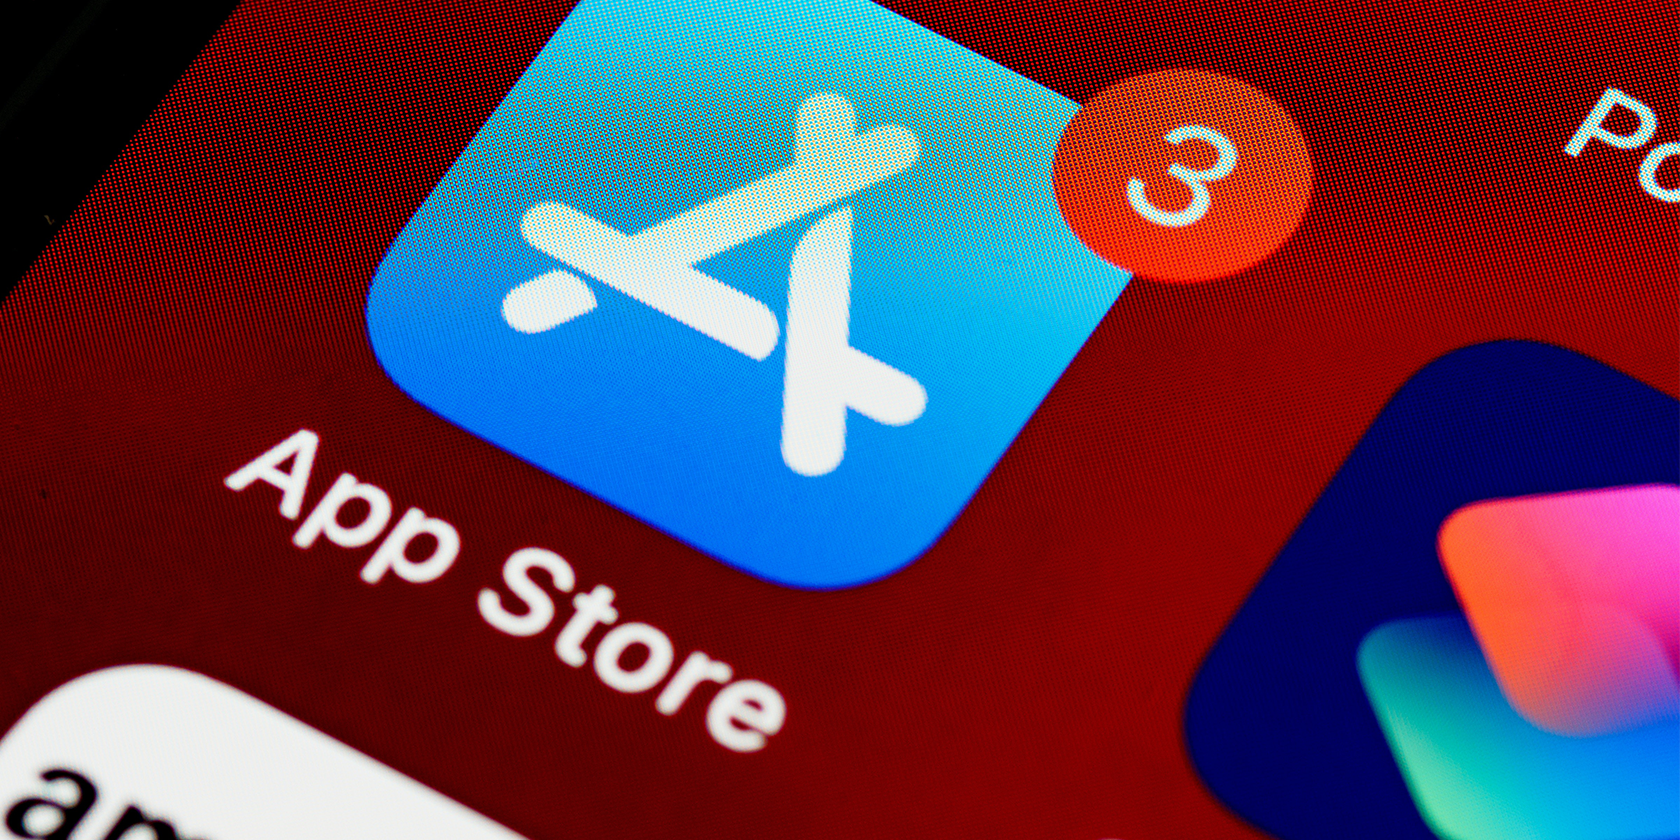 6 Little-Known iPhone Apps Developed by Apple